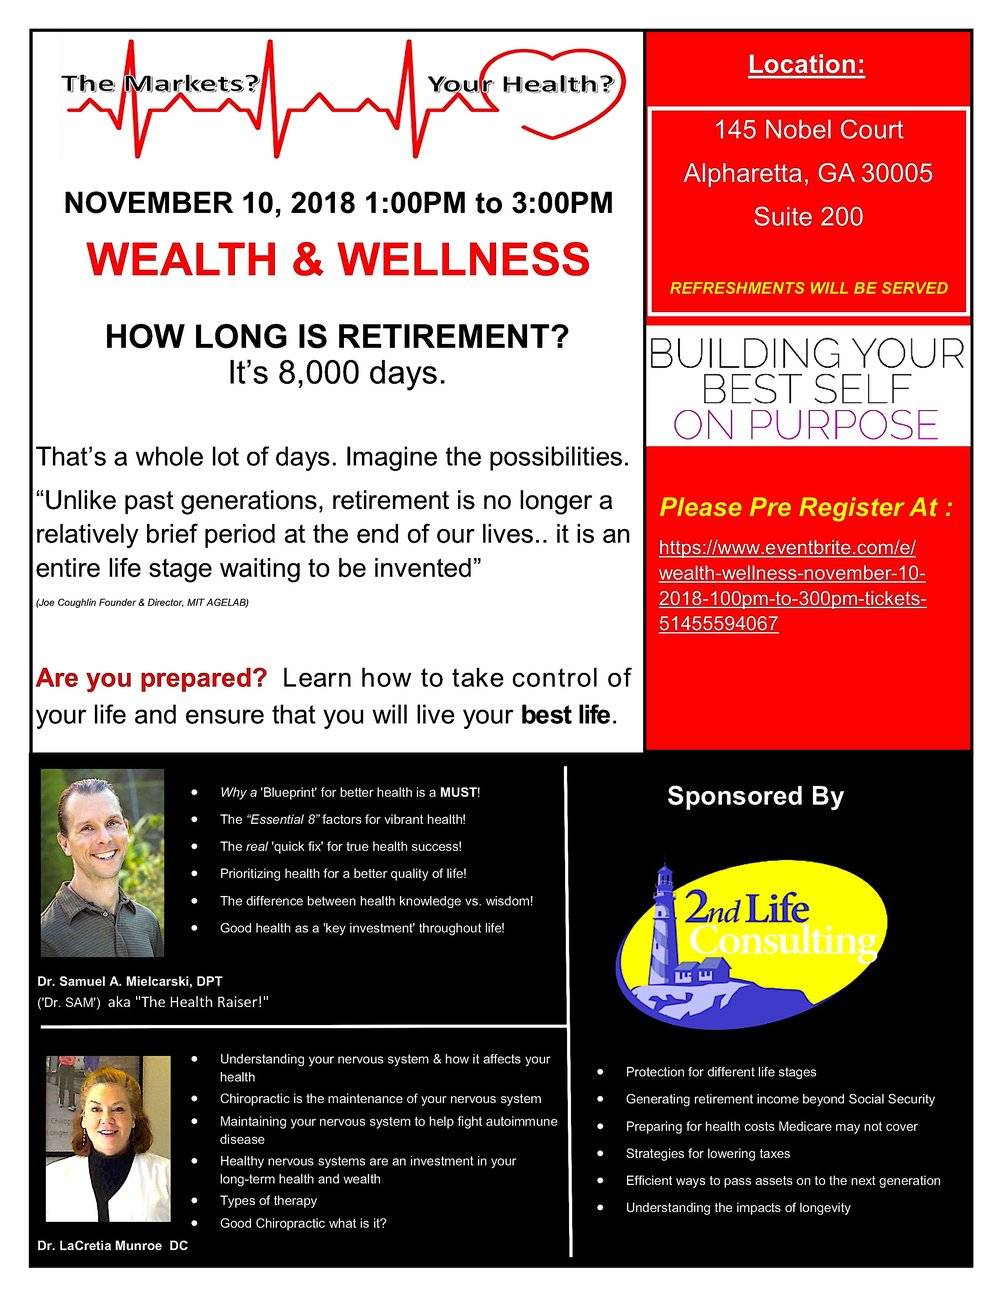 Wealth & Wellness Event With Dr. SAM.jpg